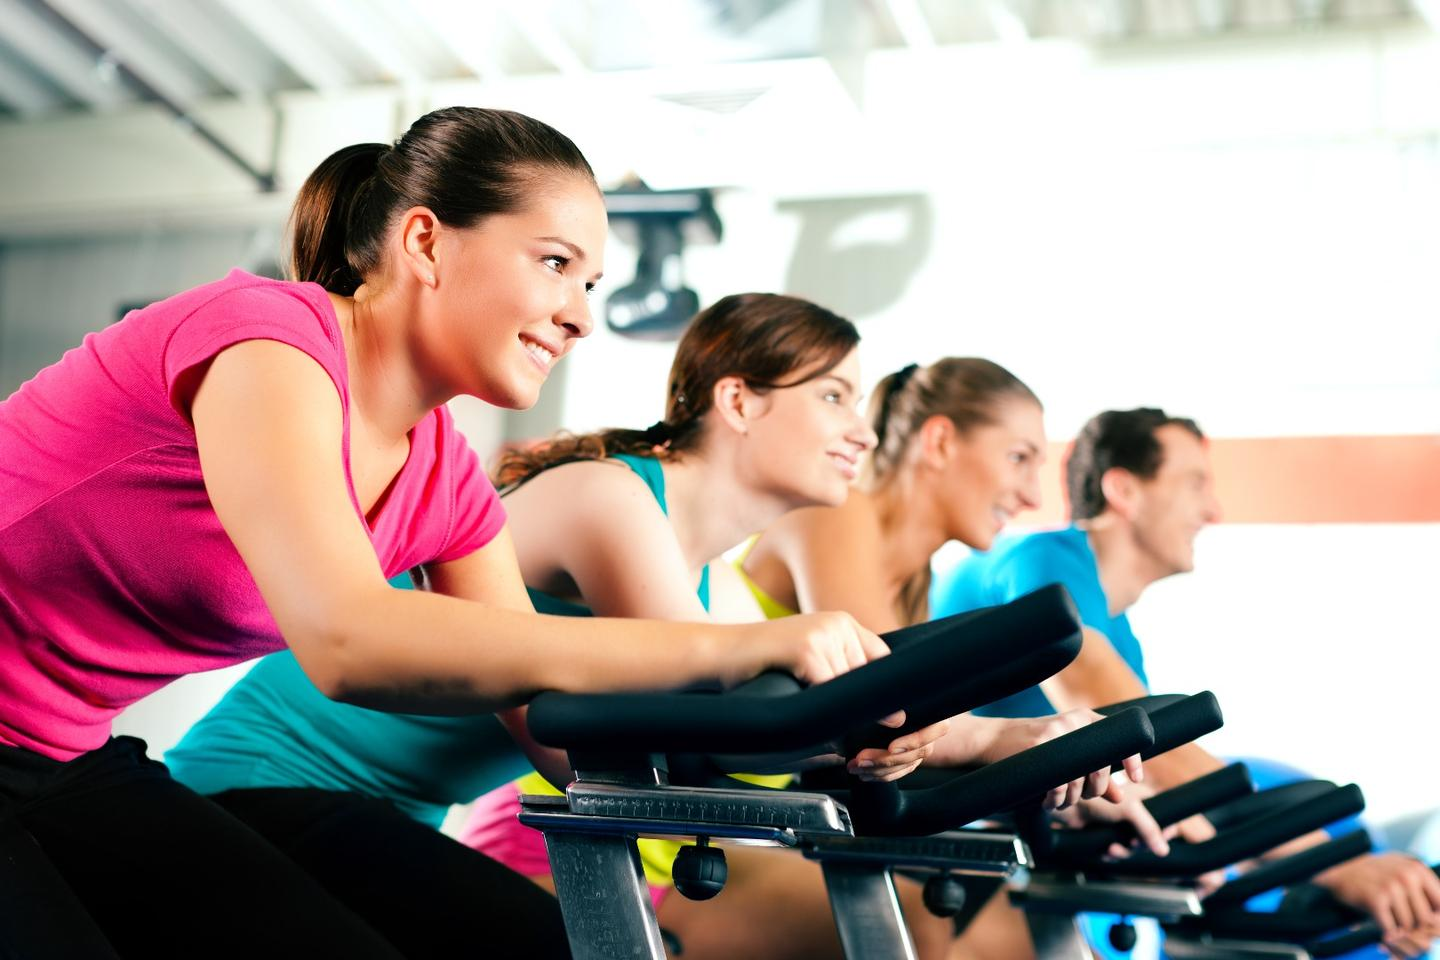 The study found that just 10 minutes of activity has a marked effect